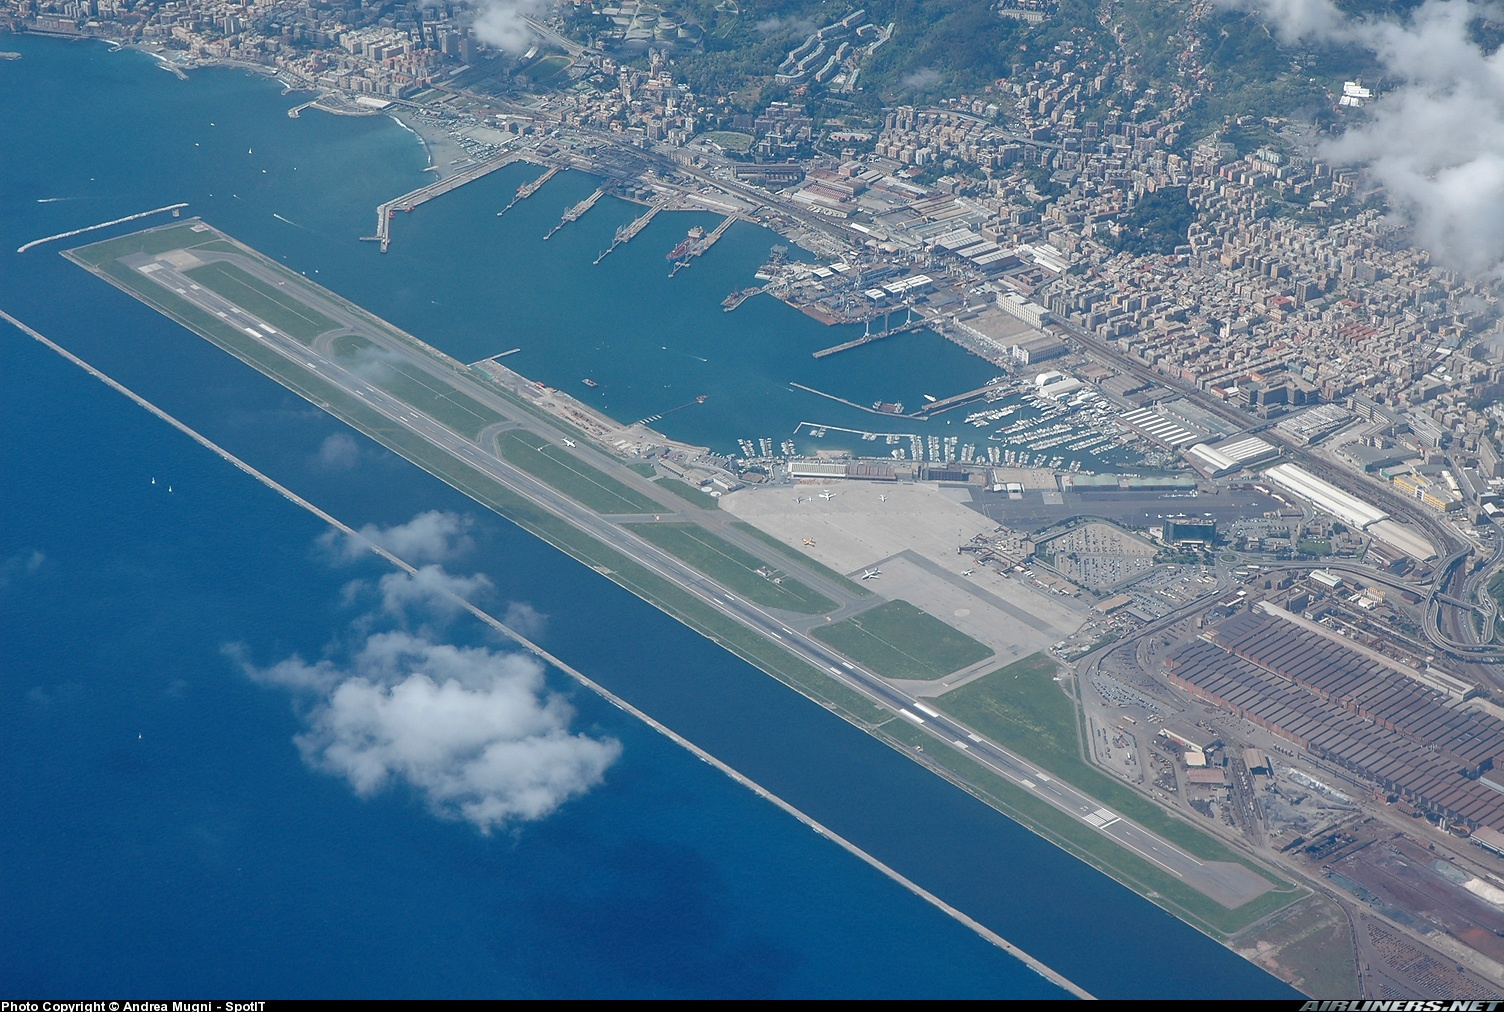 Aeroporto Heraklion : Limj airport information location and details